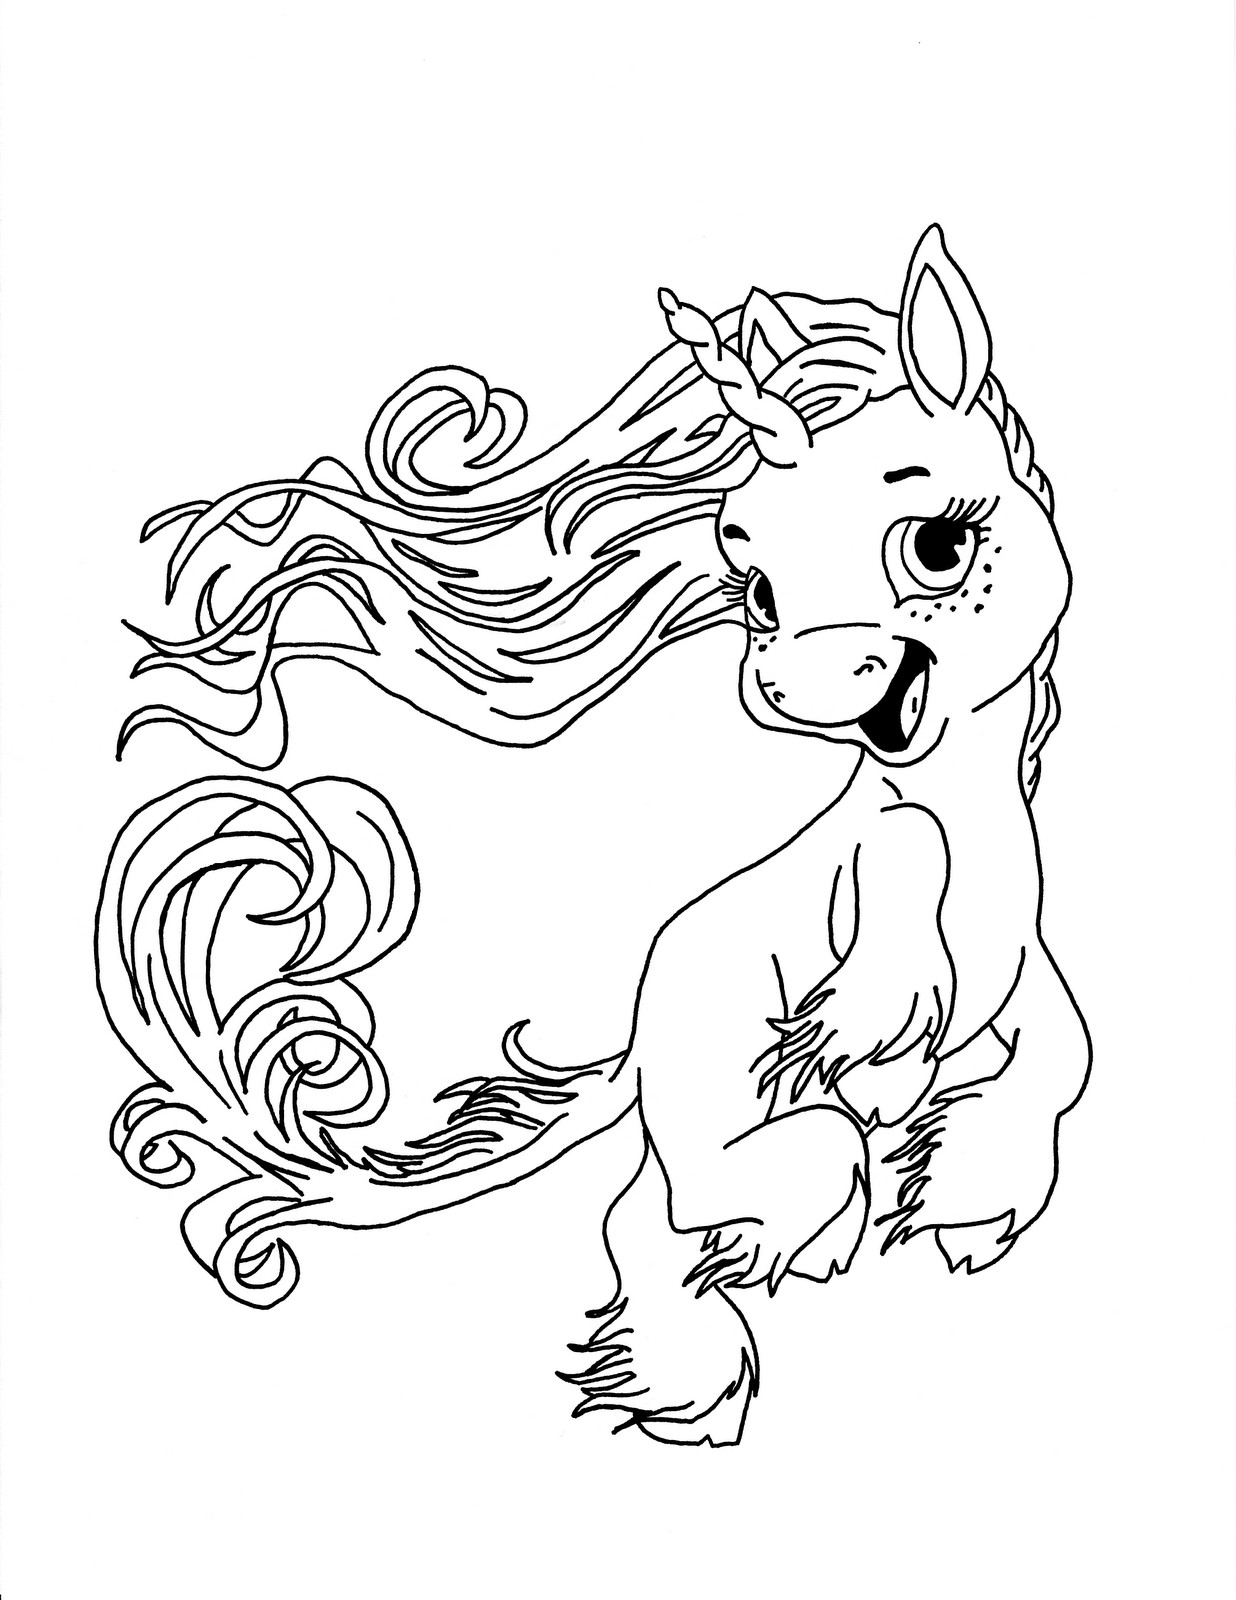 Unicorn Coloring Pages For Girls  Printable unicorn coloring pages for girls ColoringStar